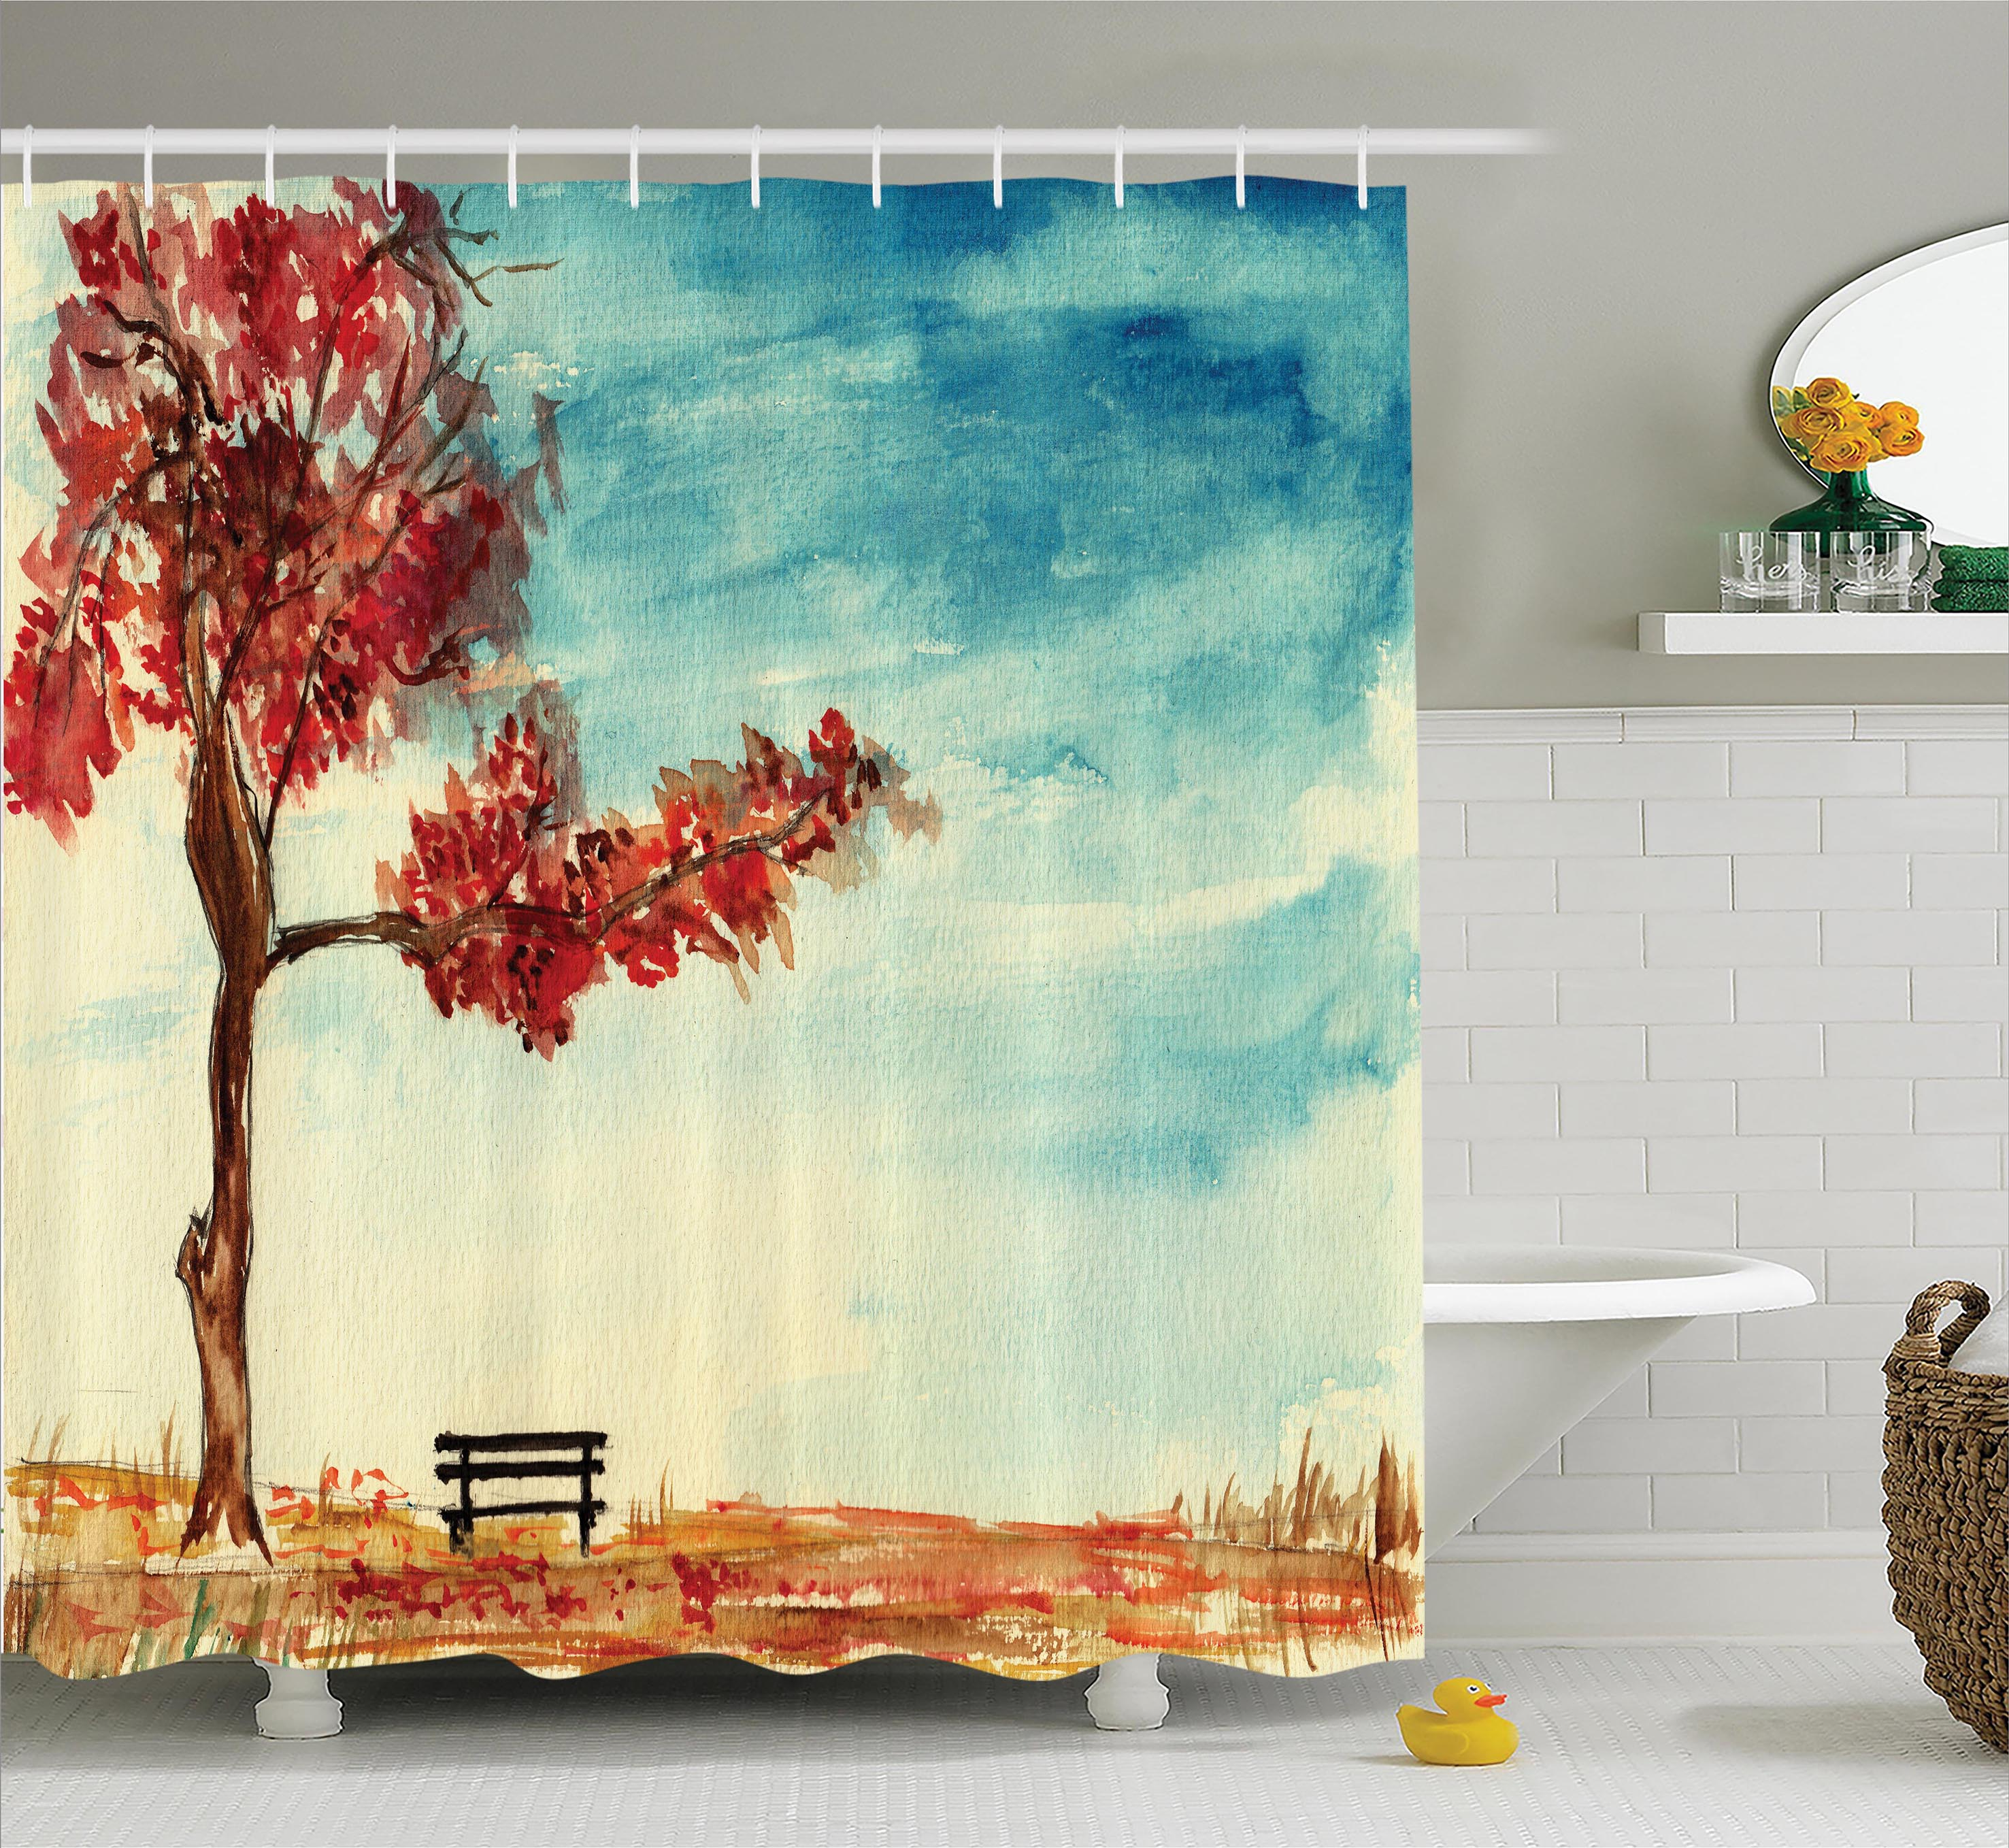 Farm House Decor Shower Curtain, Watercolored Tree and Bench Earth Ecological Protection for Future Image, Fabric Bathroom Set with Hooks, 69W X 75L Inches Long, Orange Blue, by Ambesonne